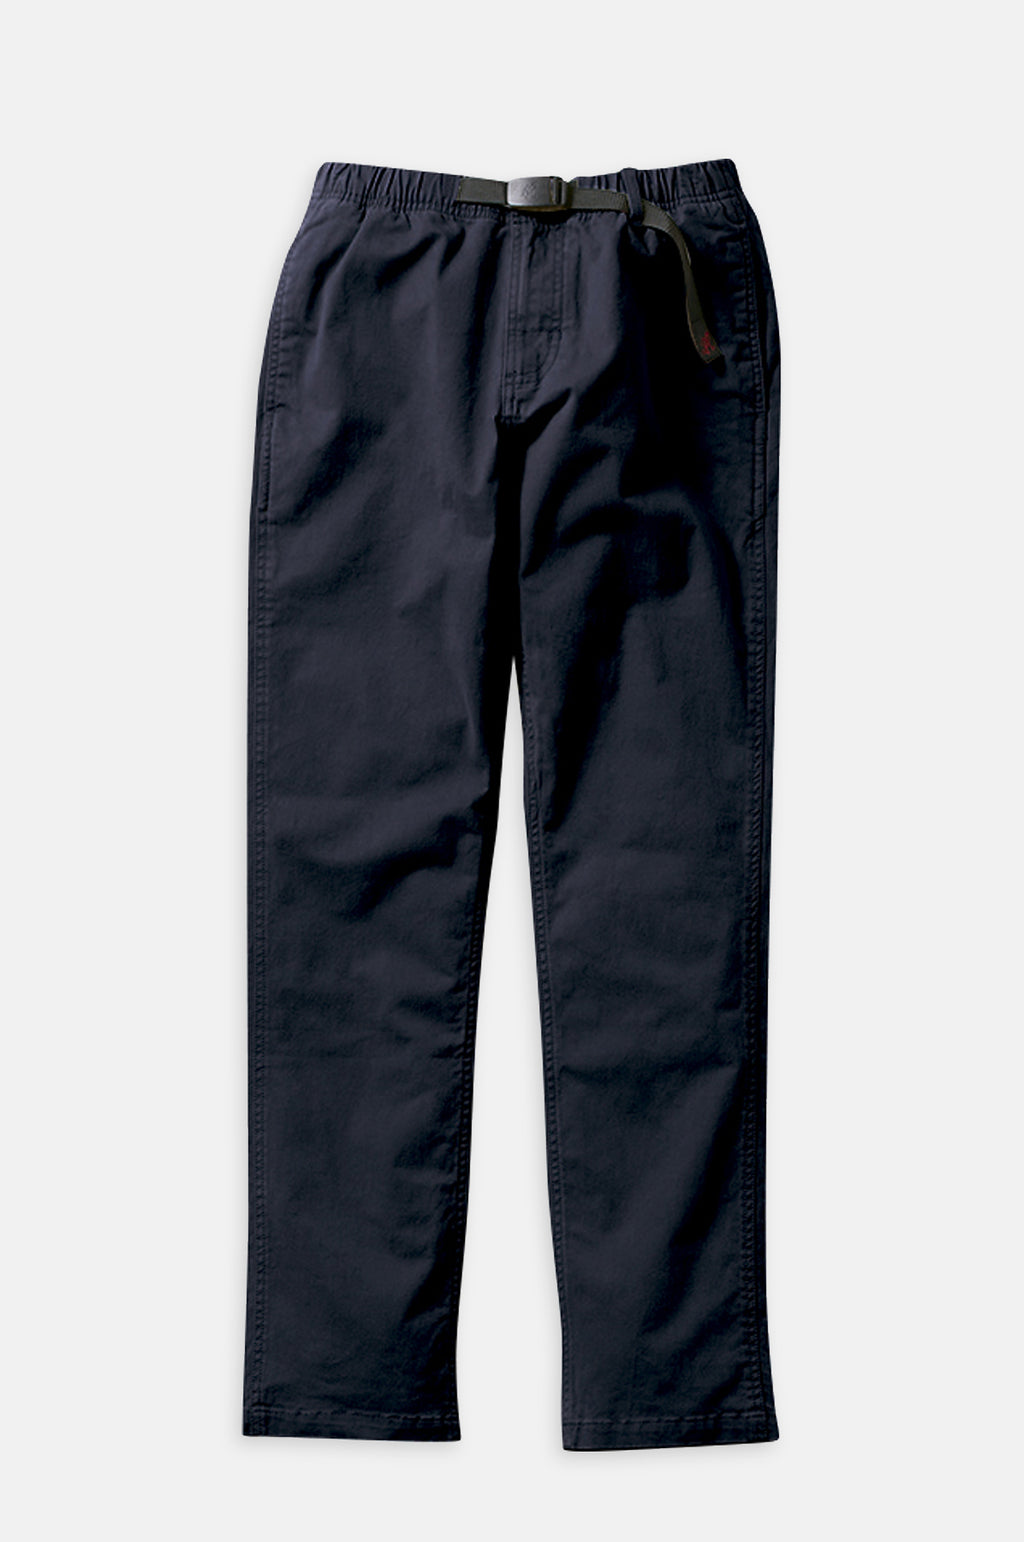 NN Just Cut Pant in Double Navy